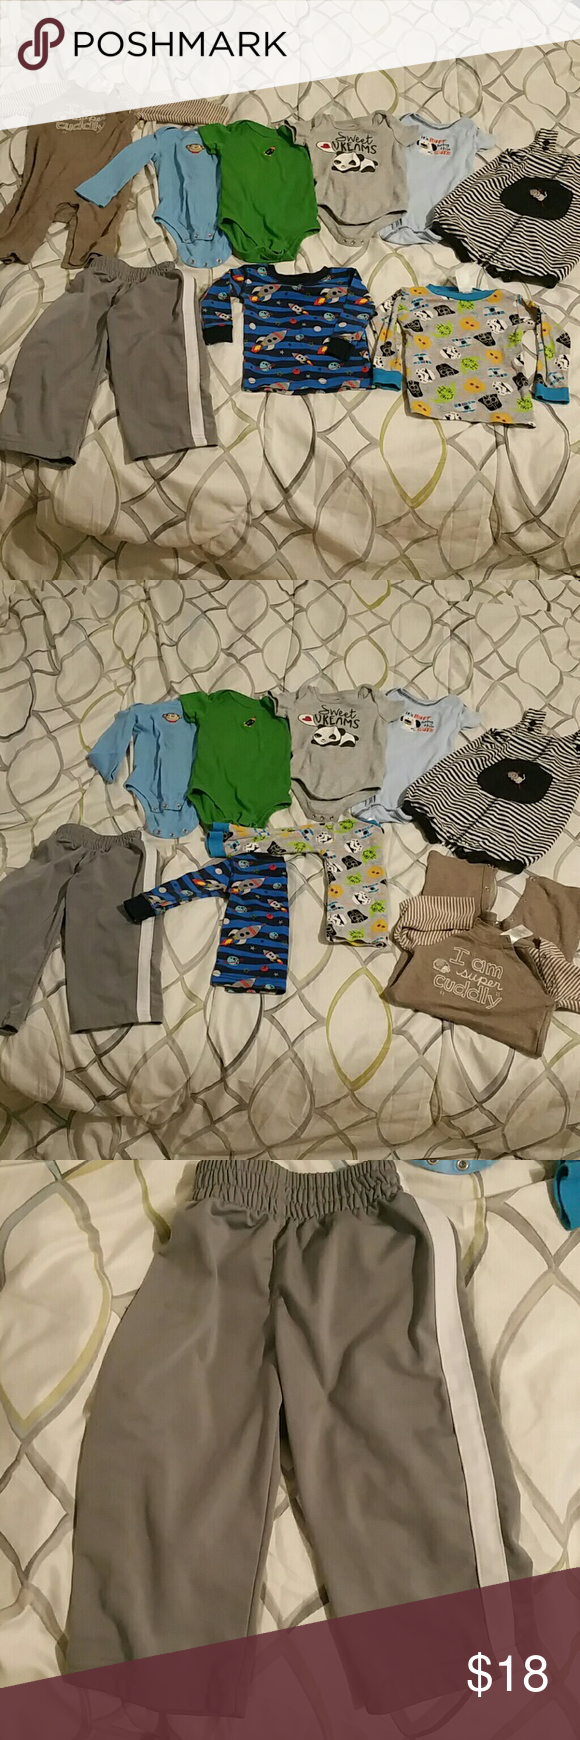 8c5d7a87f2d5 Bundle of 9 baby boy s clothing in 2018